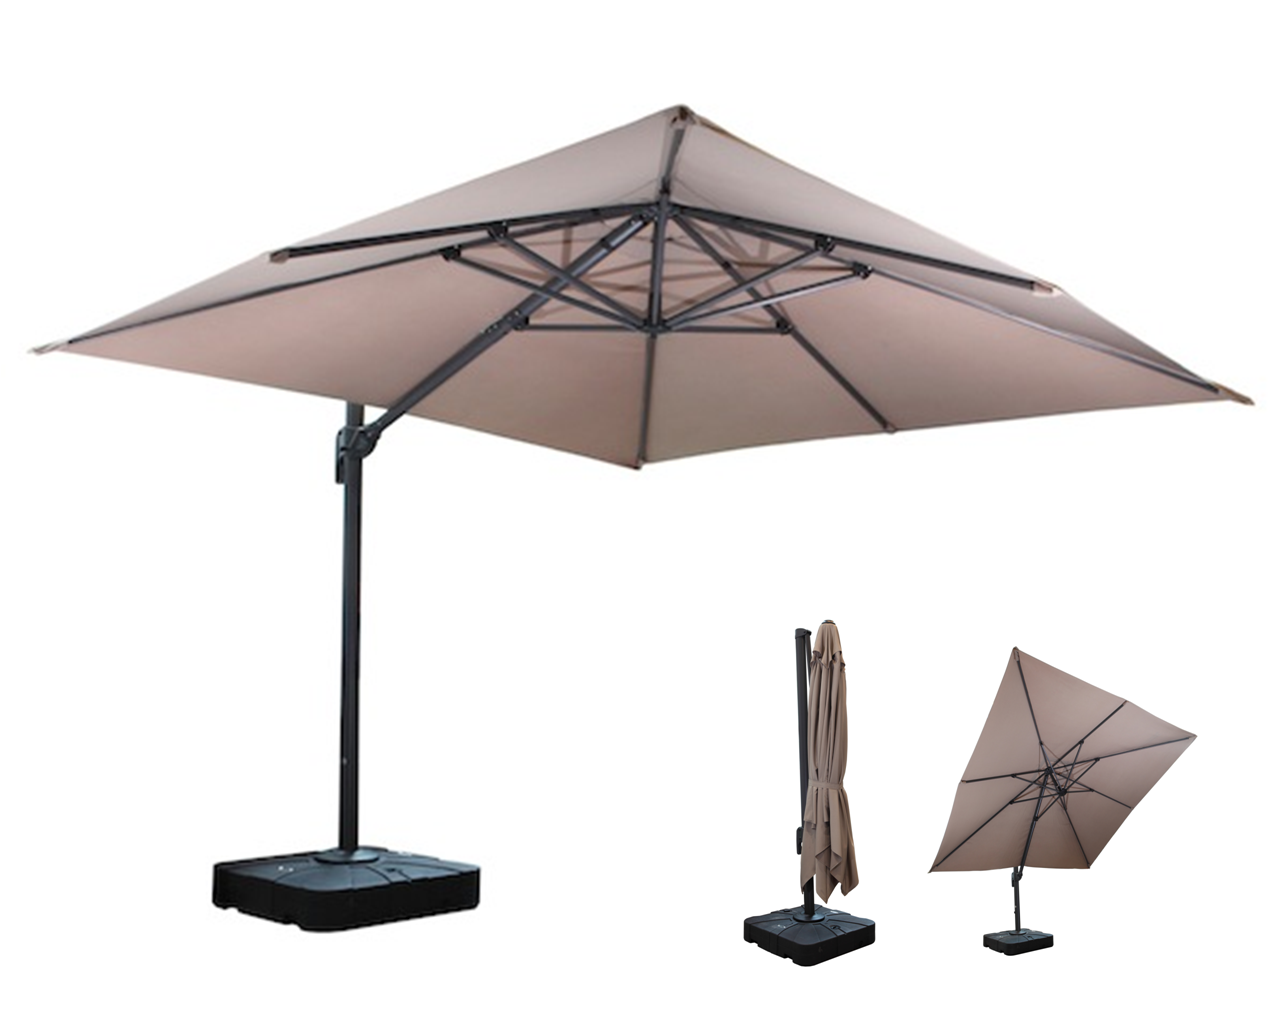 jarder side pole parasol boulevard outdoor inspirations. Black Bedroom Furniture Sets. Home Design Ideas